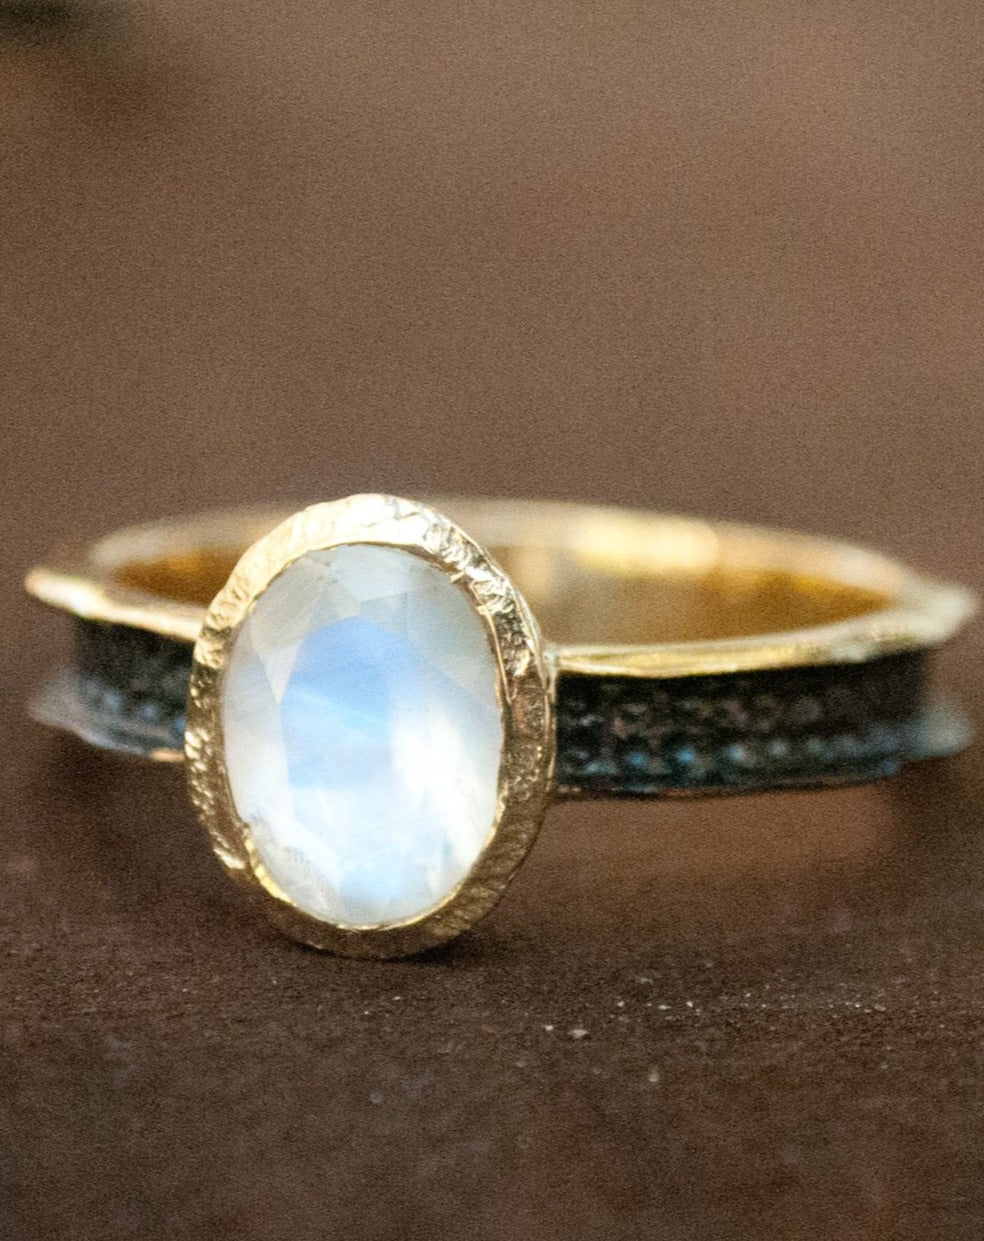 Moonstone Ring * Aqua * Statement Ring *Mix Metals Ring *Gold Ring * Boho * Jewelry * Bycila * Bohemian * BJR045